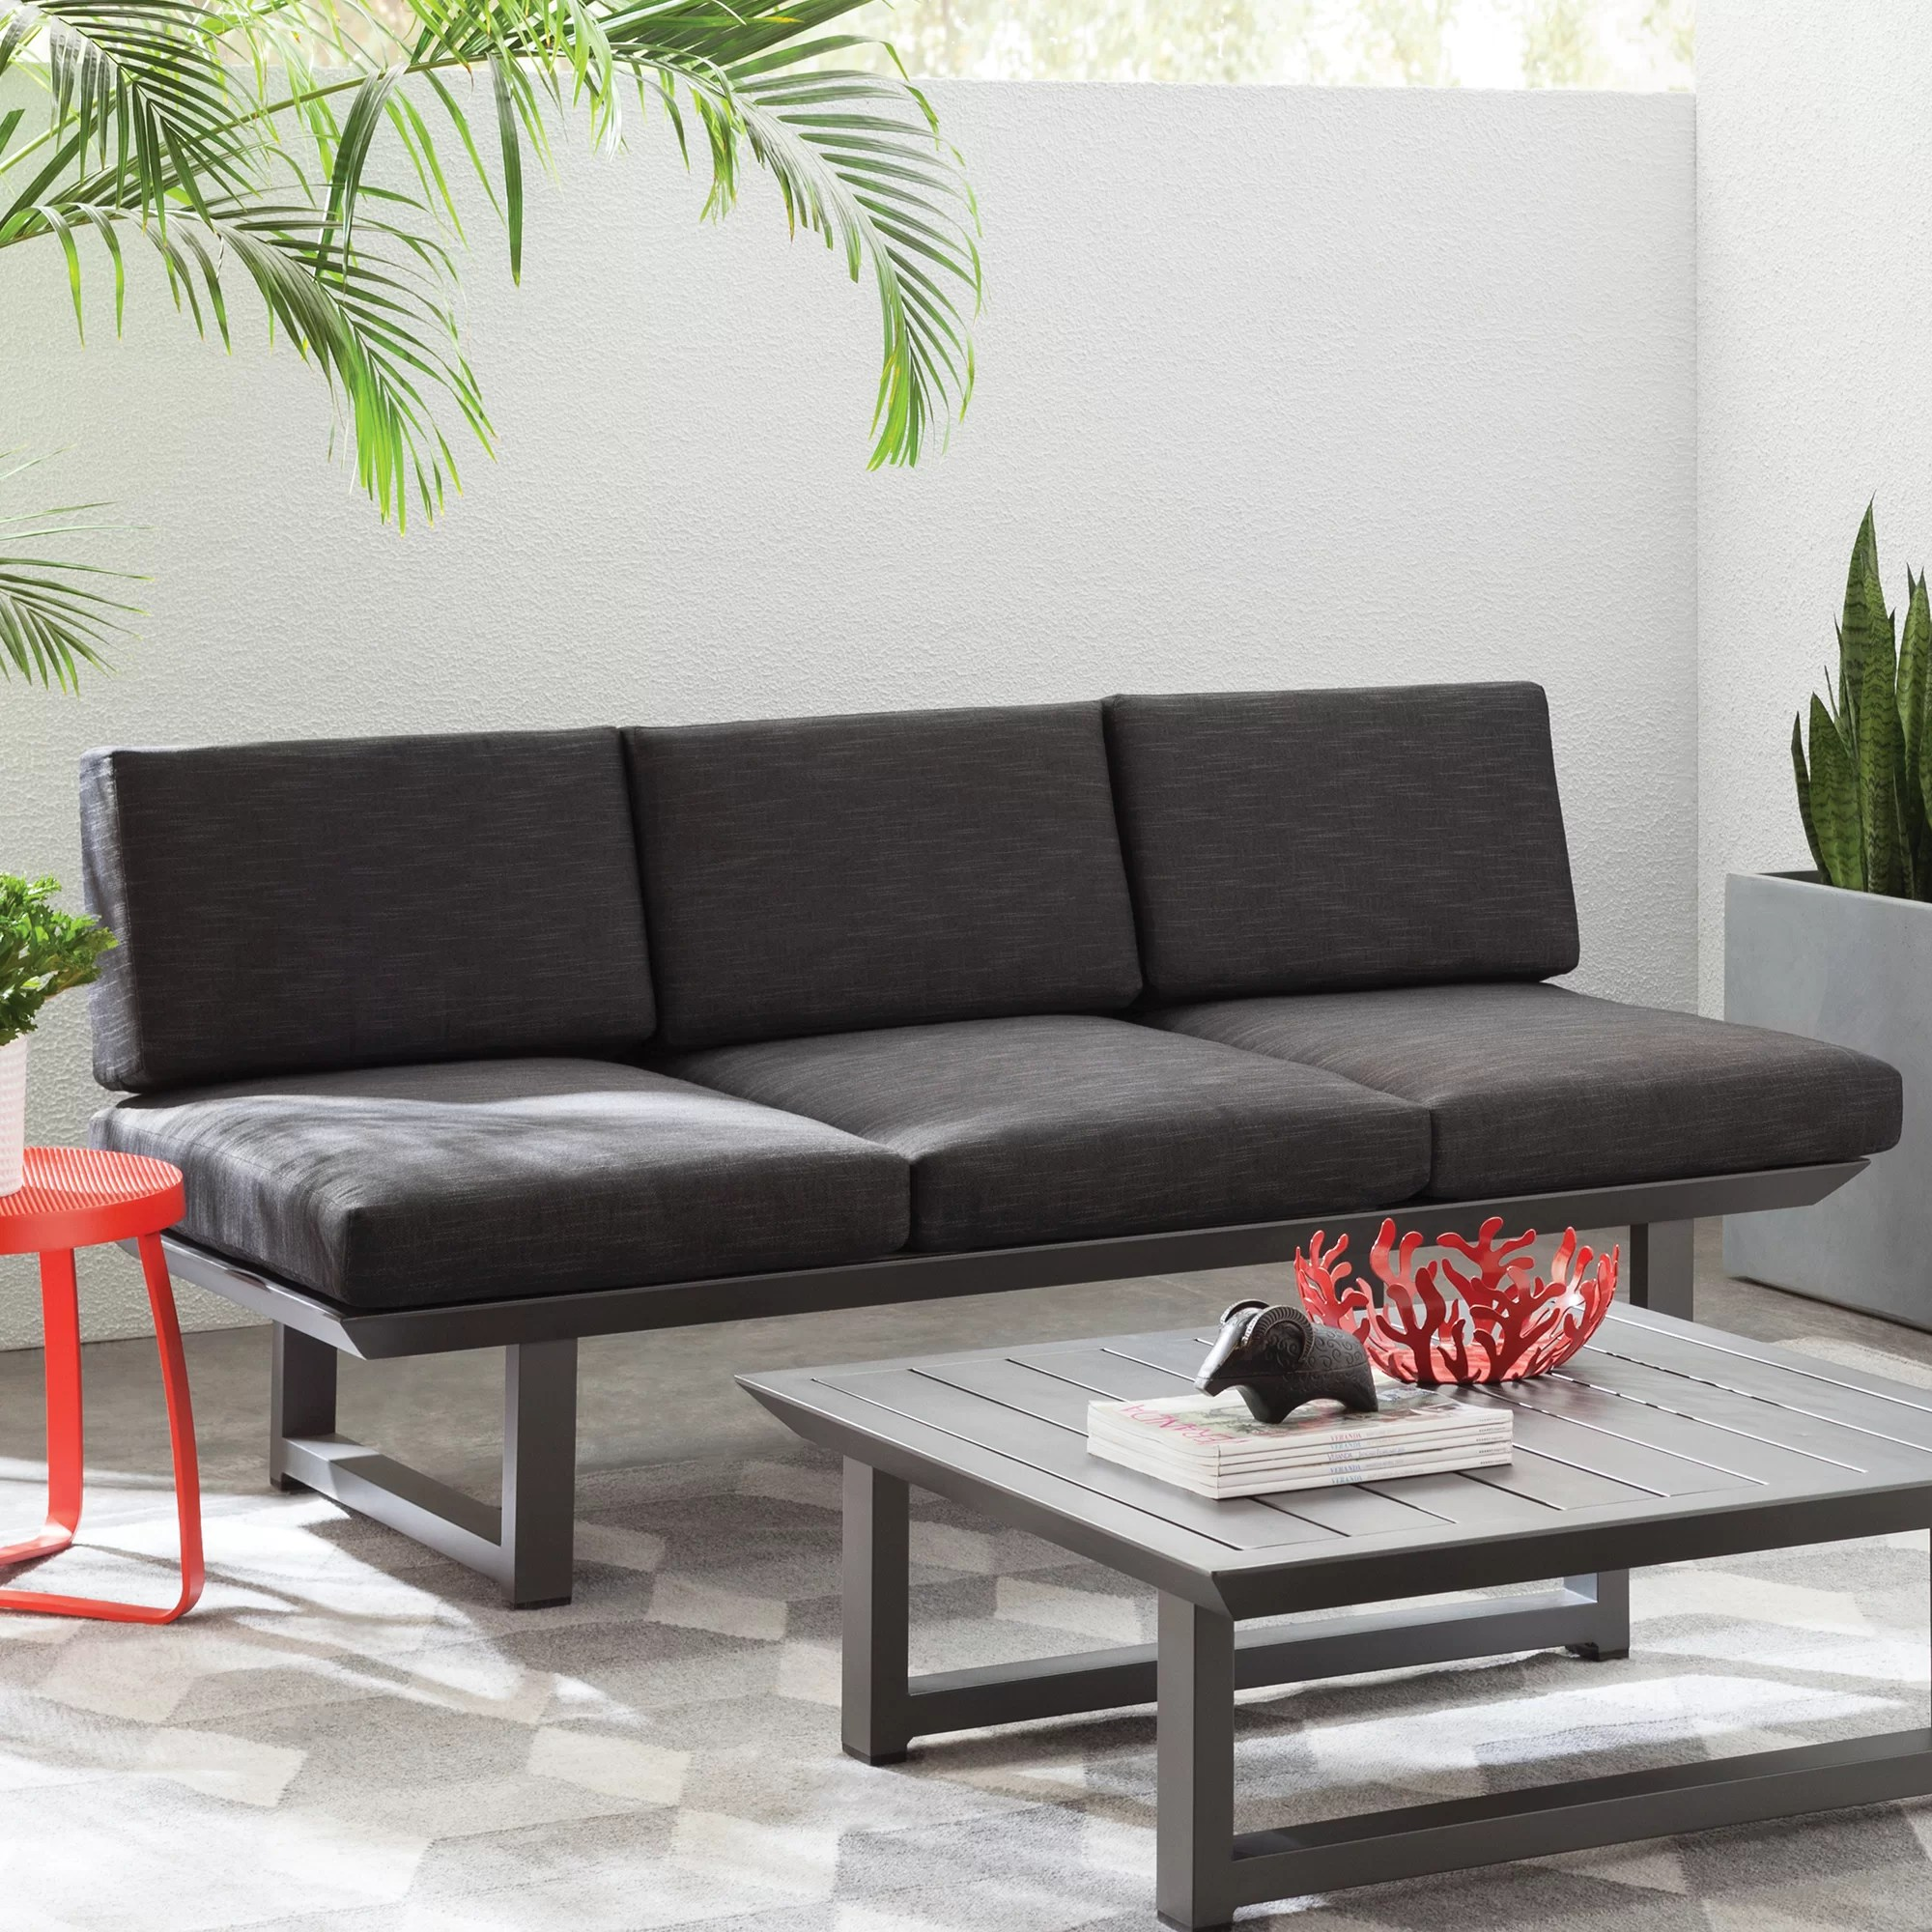 Sofa Entertainment Group Llc Modern Outdoor Lounge Furniture Allmodern